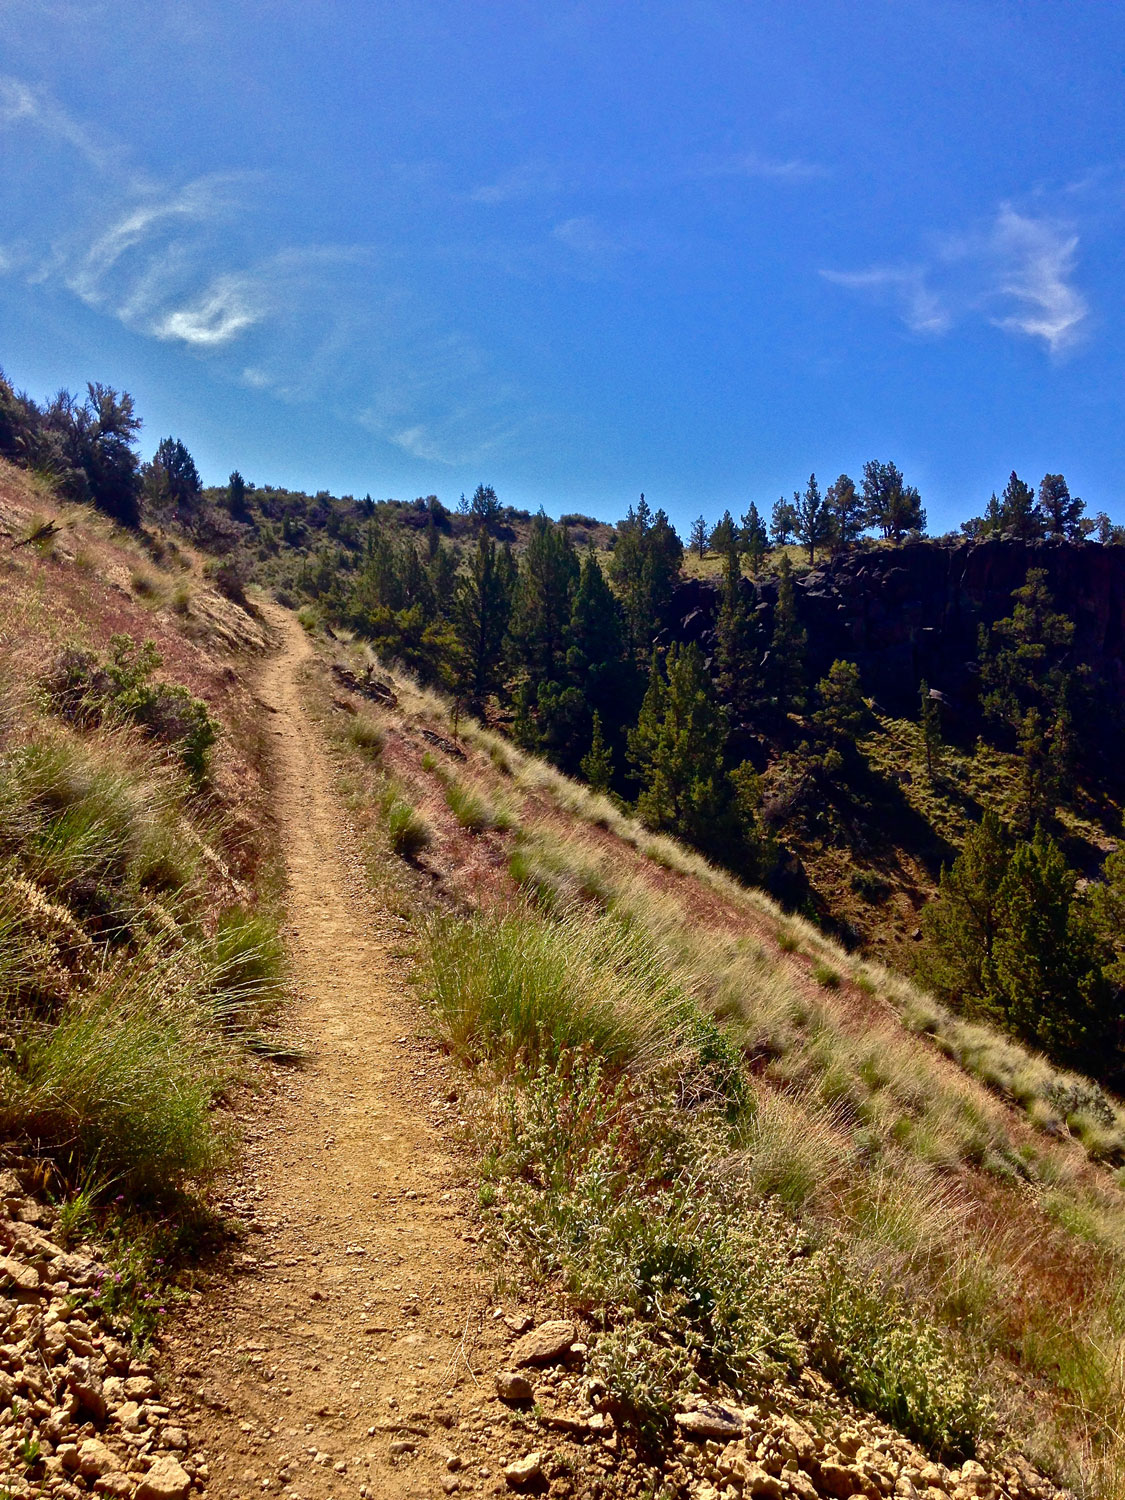 The Burma Road Trail at Smith Rock State Park is still a narrow scree path in the park boundaries.